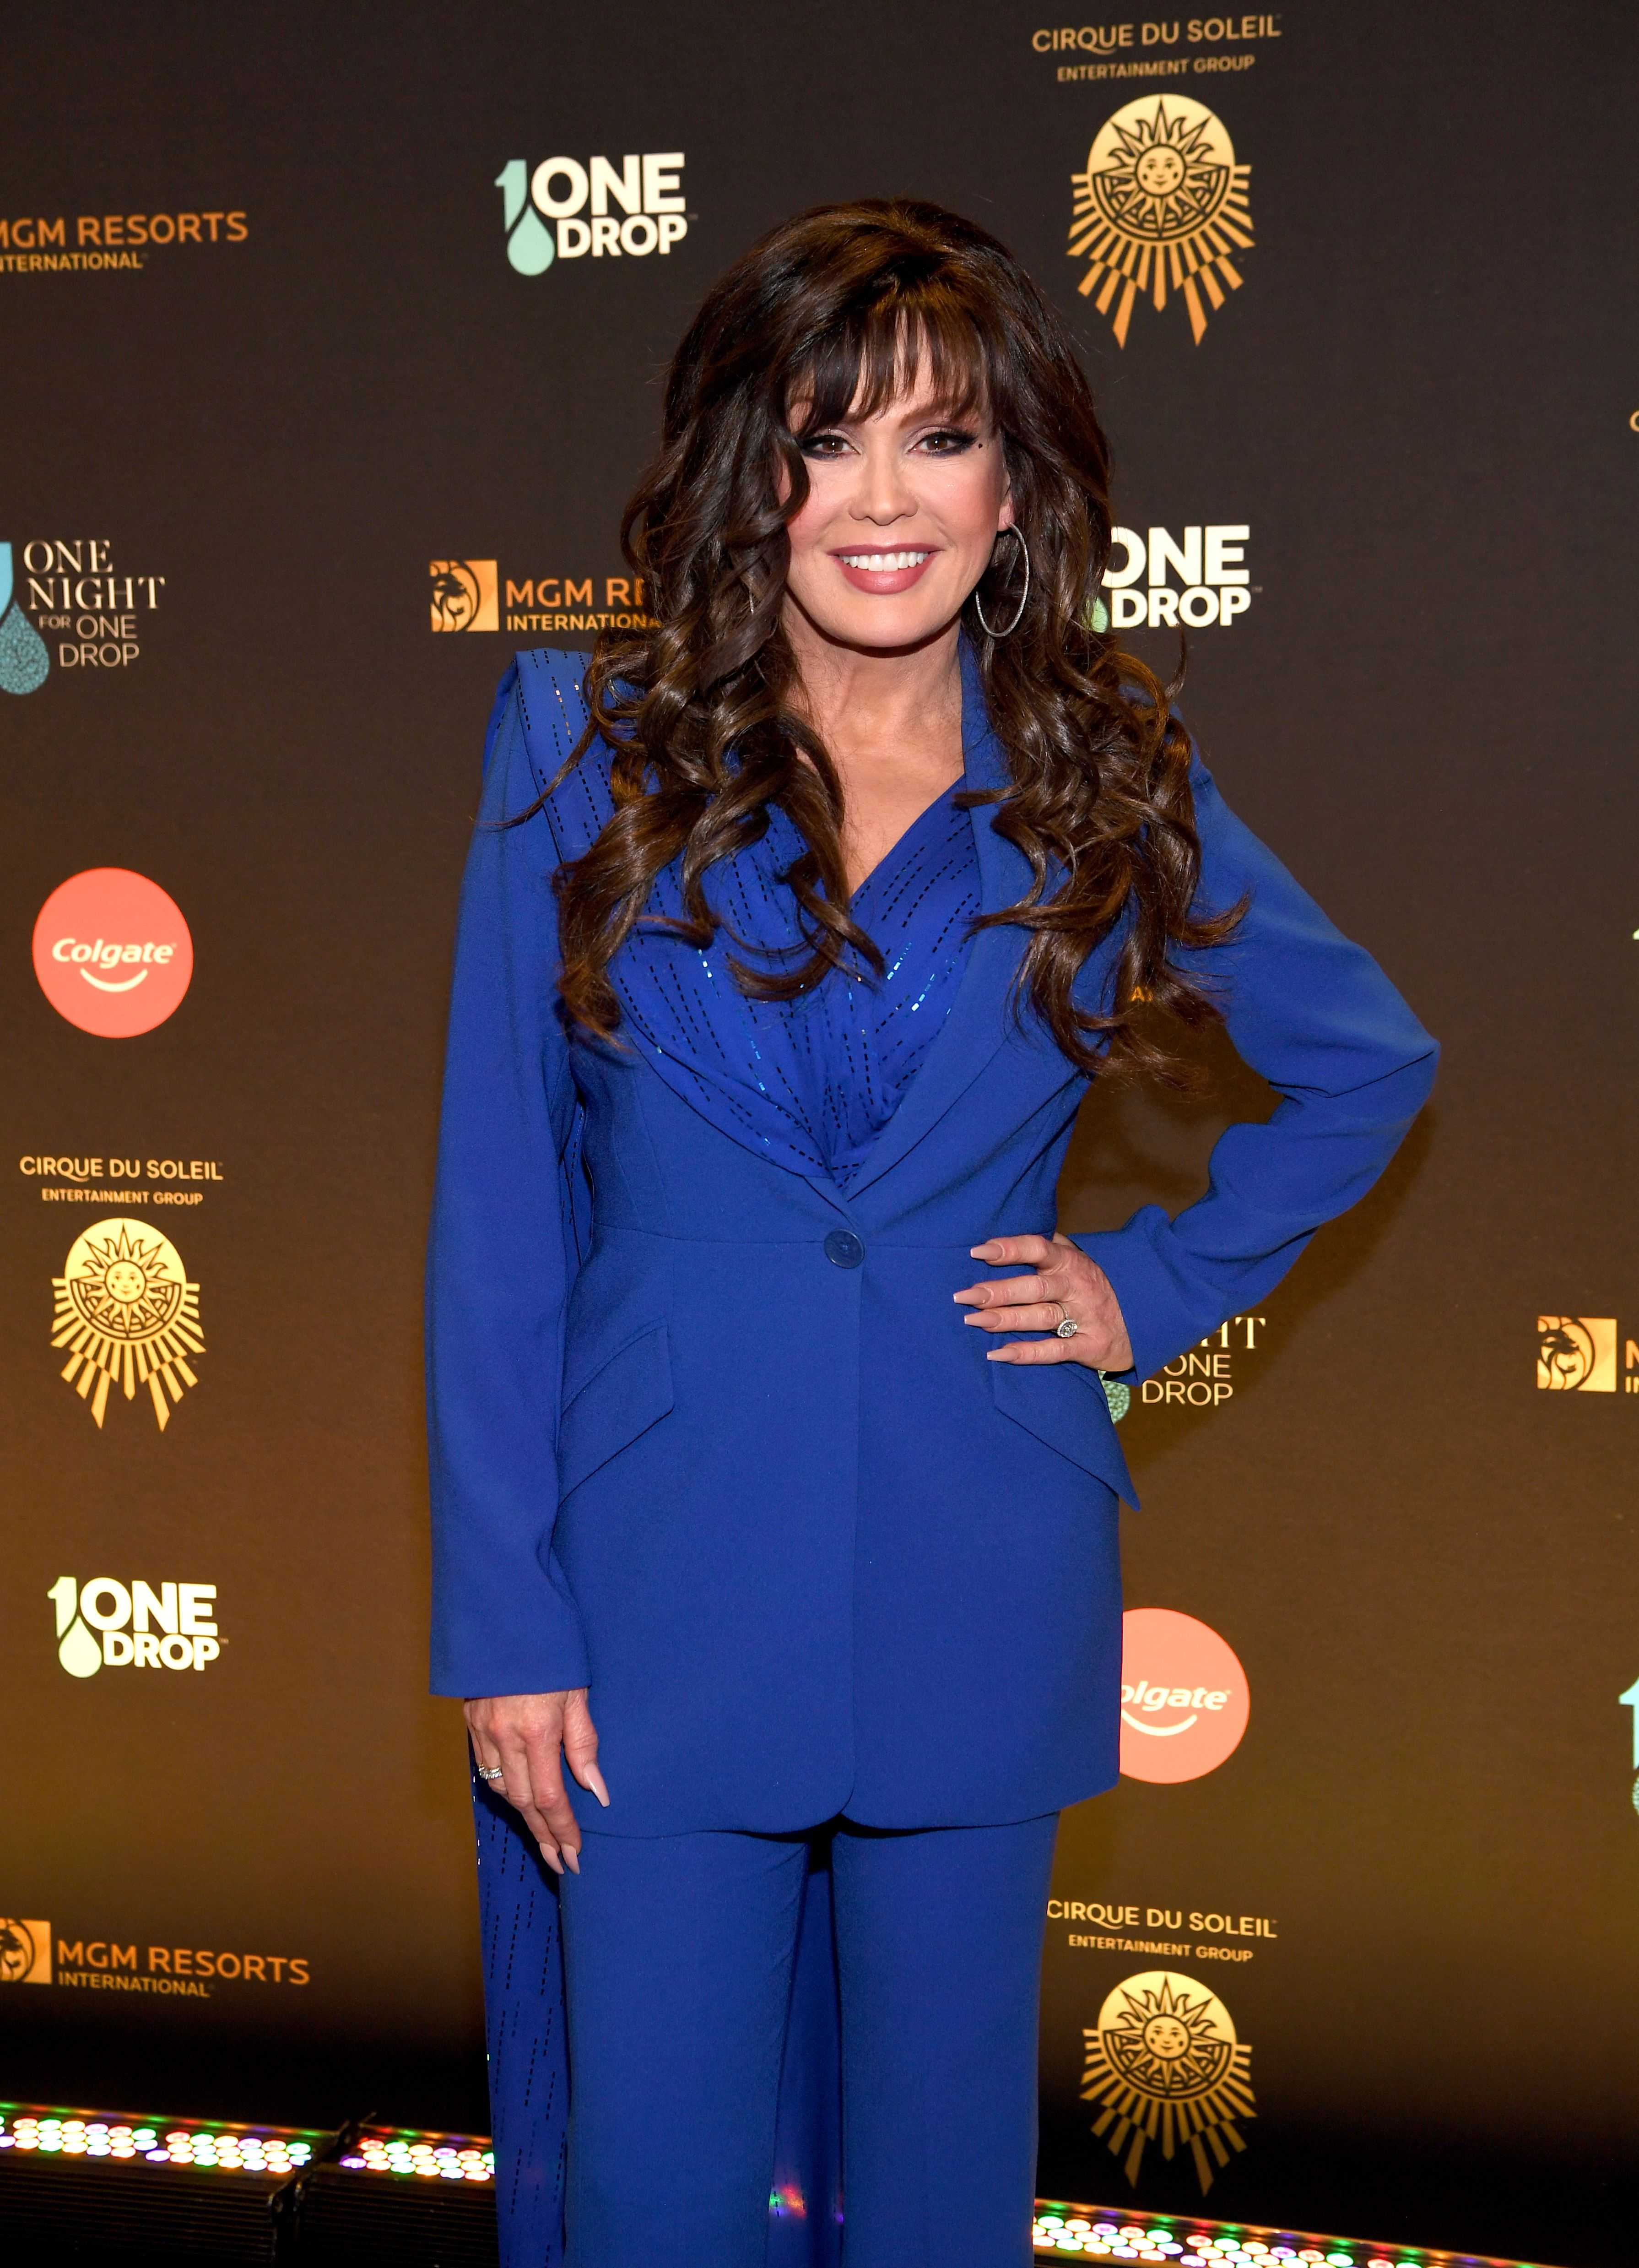 Marie Osmond atOne Night for One Drop - Imagined by Cirque du Soleil and brought to you by Colgateon March 08, 2019, in Las Vegas, Nevada | Photo:Denise Truscello/Getty Images